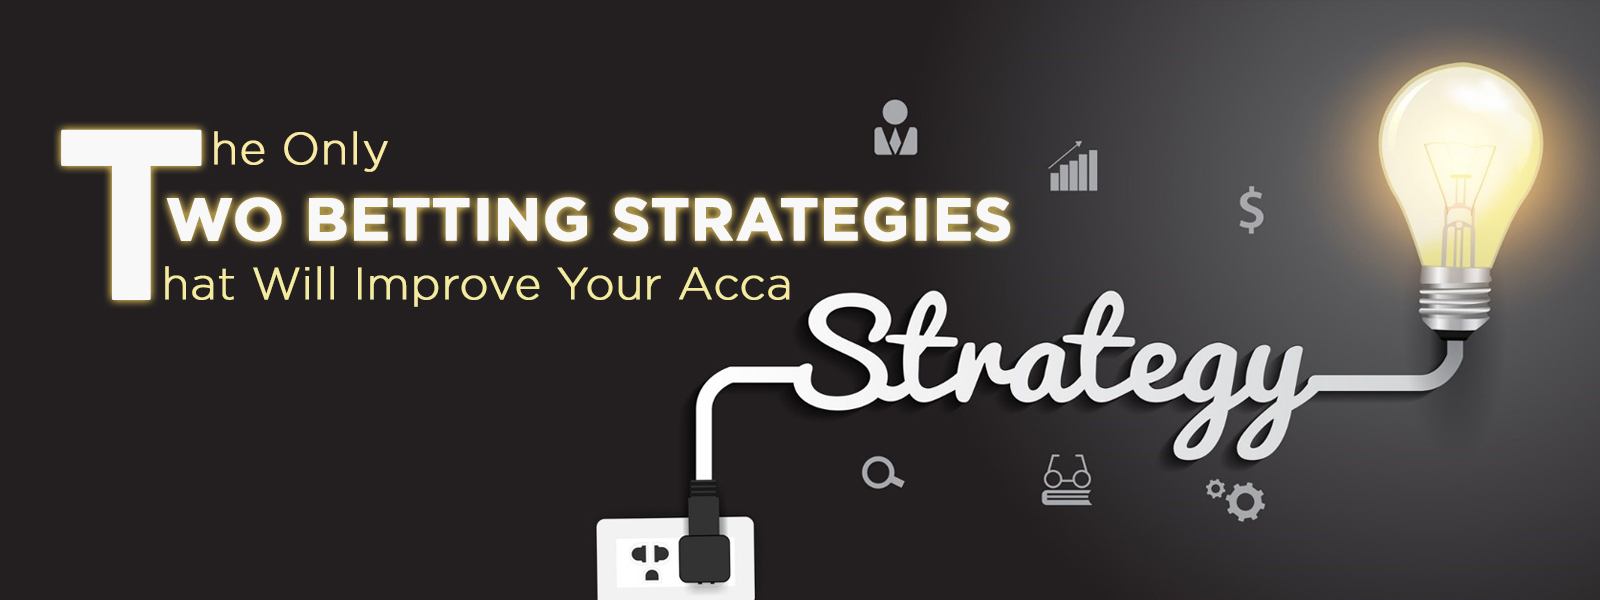 The Only Two Betting Strategies that Will Improve Your Acca